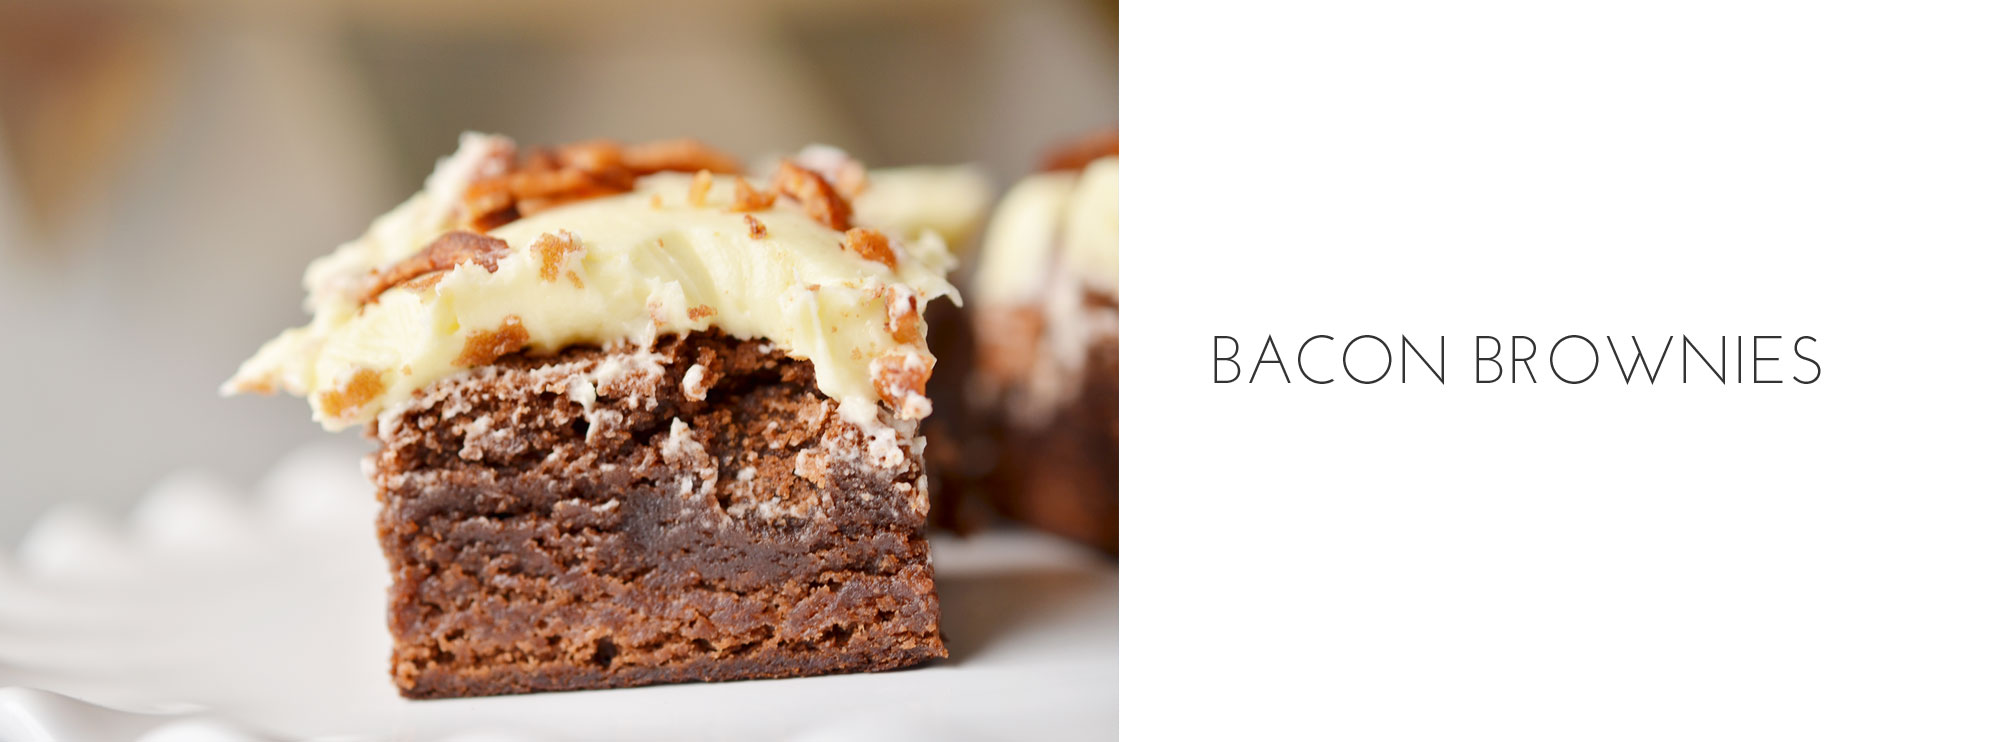 ALI HEDIN'S BACON BROWNIES FROM Q13 FOX